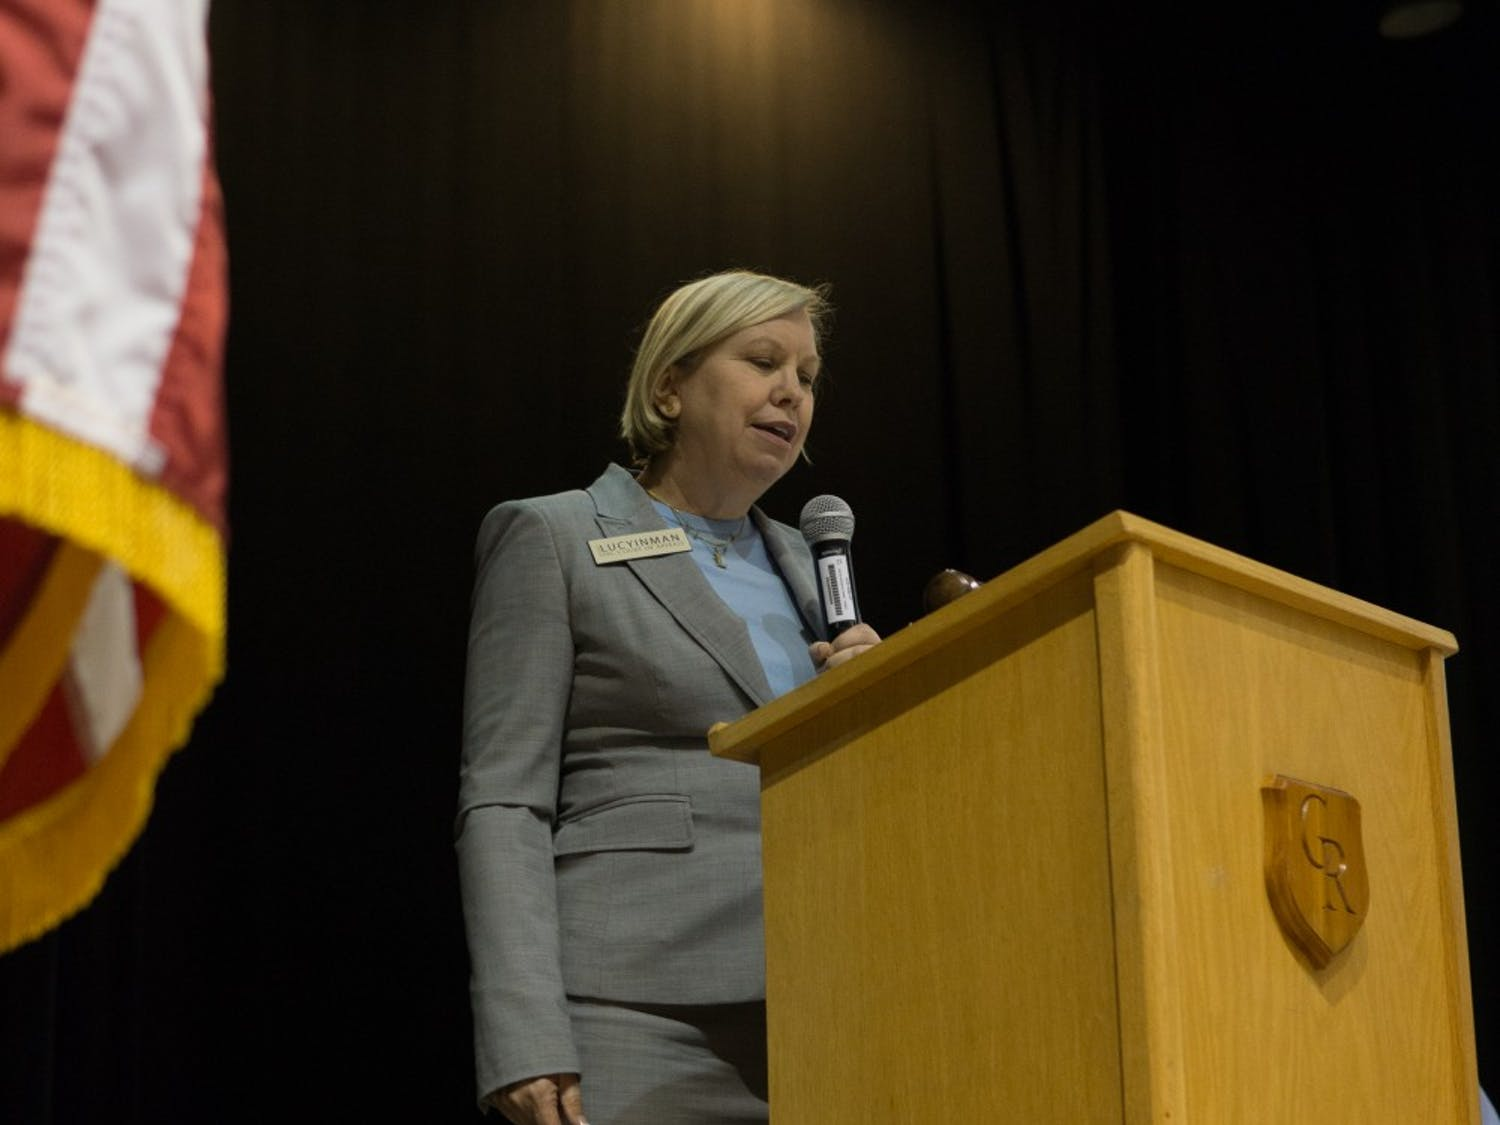 """2020 Candidate for NC Supreme Court, Lucy Inman, gave the keynote speech at the Orange County Democratic Convention Saturday, March 30, 2019 at Cedar Ridge High School.  """"They even changed the ballots to favor Republicans. This was not at the request of any judge I know.  This was a legislative agenda,"""" said Inman when speaking on election tampering."""